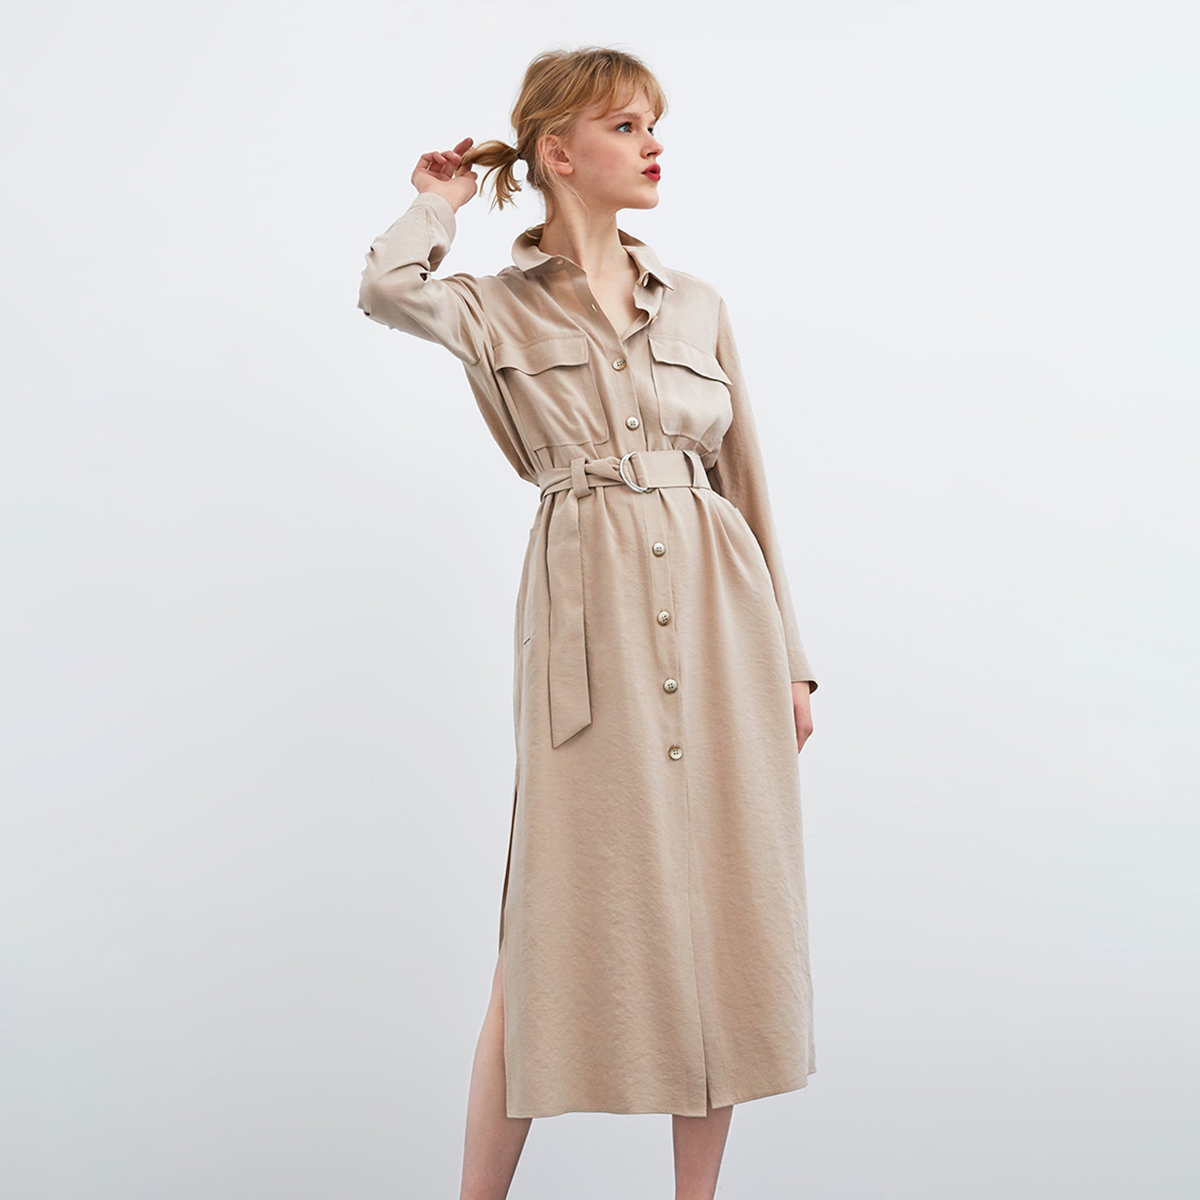 2019 Autumn Women Coat Safari Style Long Sleeve Turn Down Collar Sashes   Trench   Women Coat Pocket Single Breasted Solid Coat